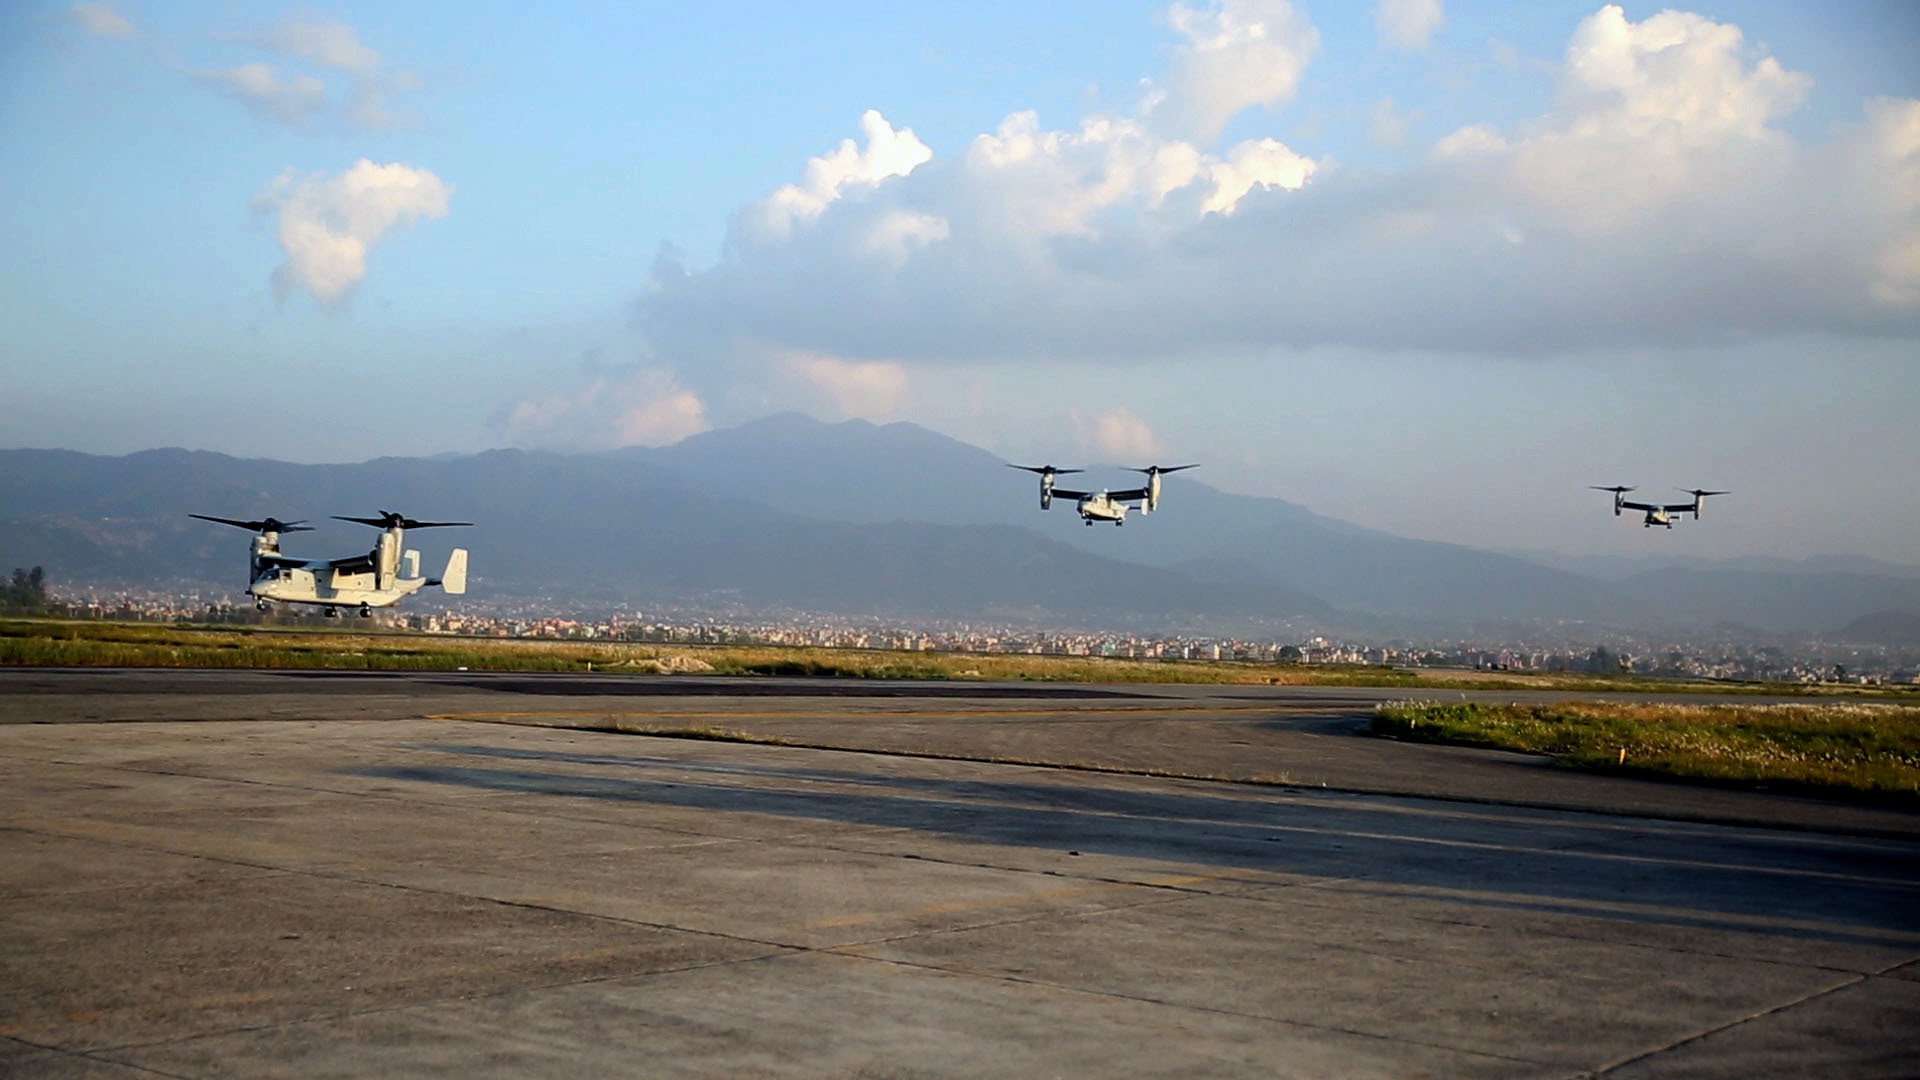 U.S. Marine V-22 Ospreys fly into Tribhuvan International Airport in Kathmandu, Nepal, May 3. U.S. Marines also brought an UH-1N Huey, tools and equipment to support the government of Nepal. The Nepalese Government requested the U.S. Government's help after a 7.8 magnitude earthquake struck their country, April 25. The Marines are with Marine All-Weather Fighter Attack Squadron 242, Marine Aircraft Group 12, I Marine Aircraft Wing, III Marine Expeditionary Force. (U.S. Marine Corps photo by Lance Cpl. Mandaline Hatch/Released)